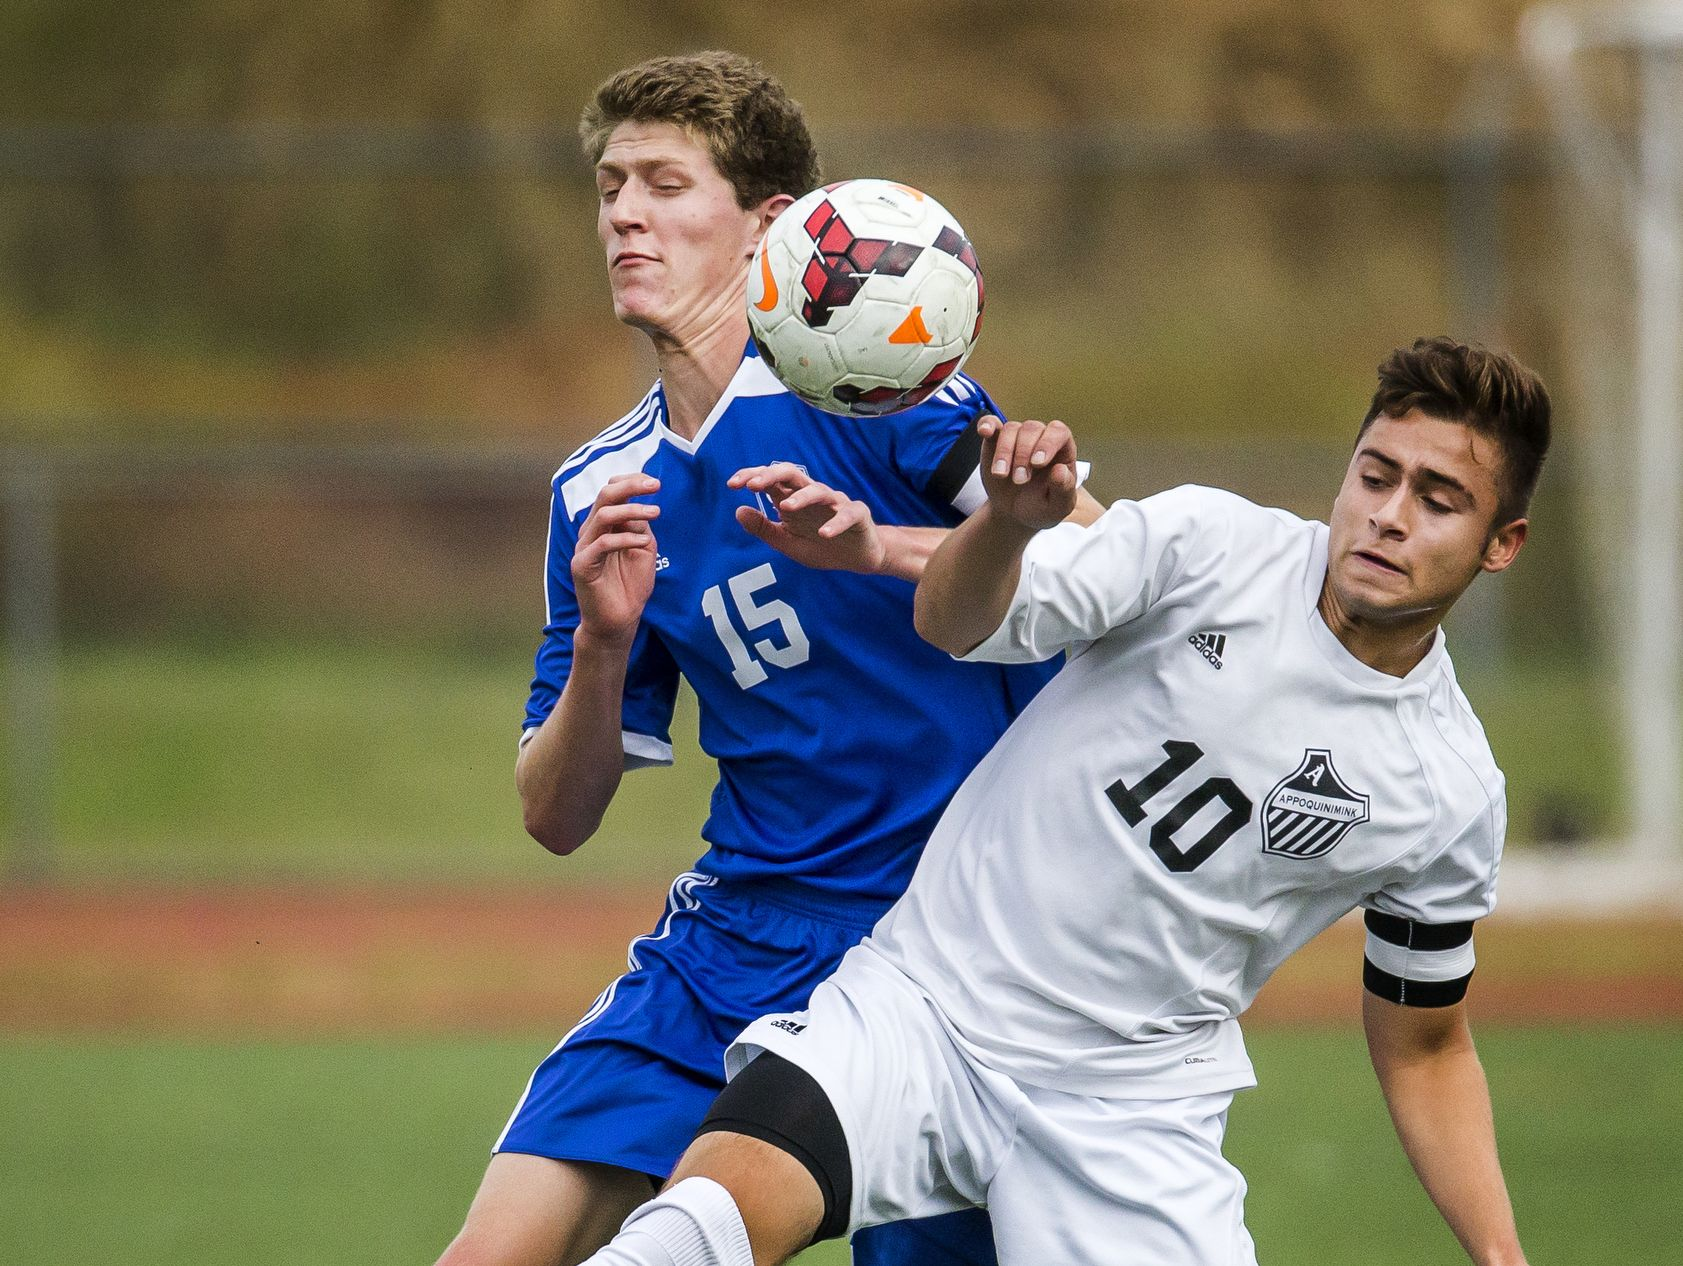 Appoquinimink's Joseph Scarpinato (No. 10) and Charter's Nolan Constantine (No. 15) fight for the ball in the first half of Appoquinimink's 1-0 win over Charter School of Wilmington at Appoquinimink High School in Middletown on Tuesday afternoon.